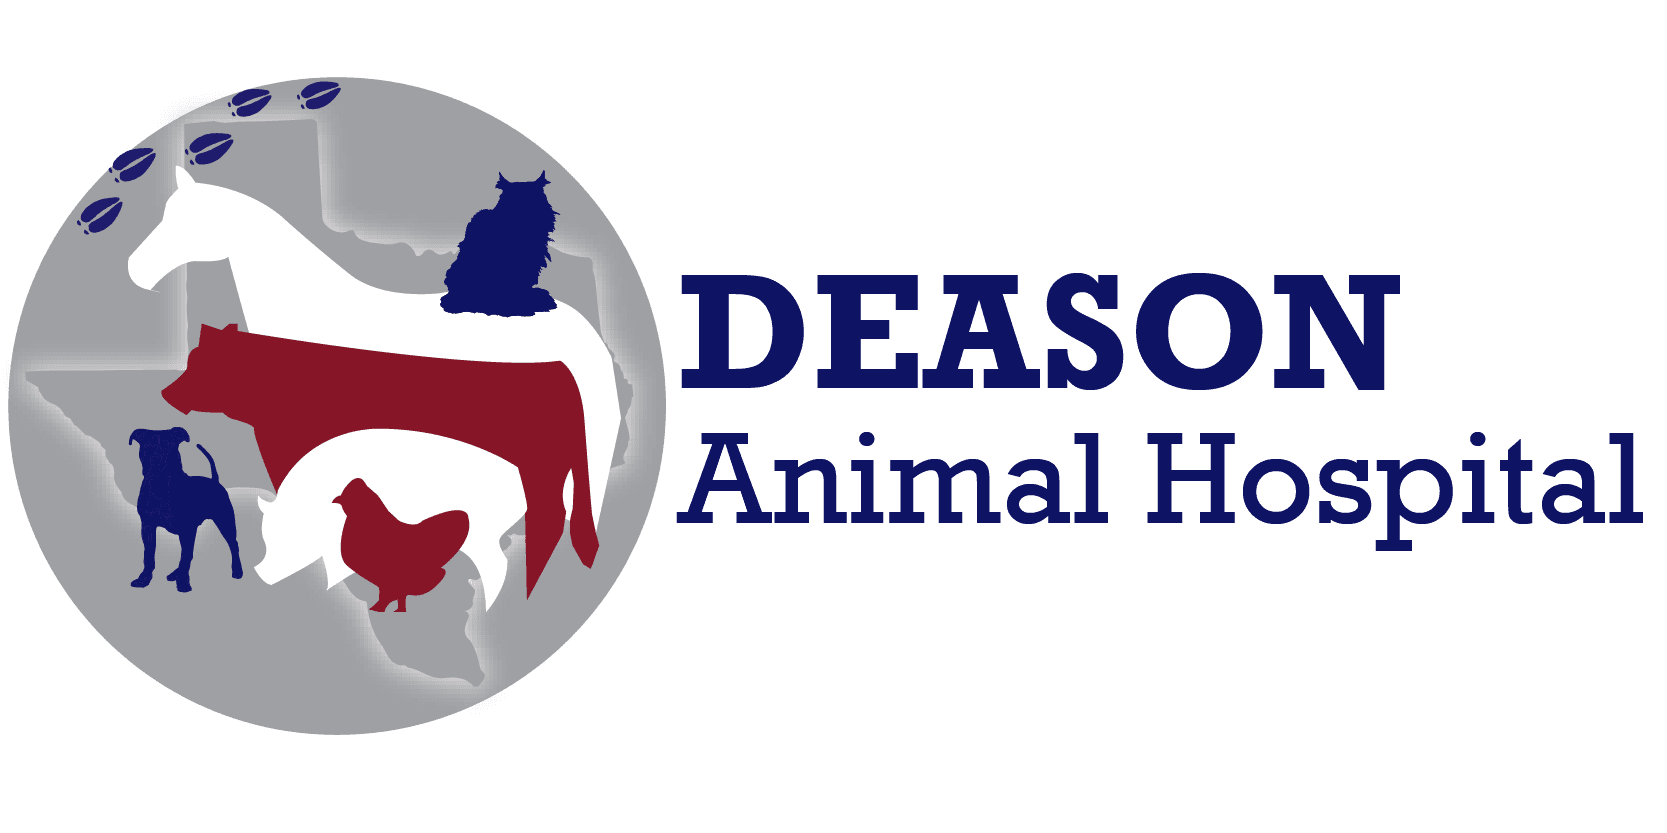 Contact Information for Deason Animal Hospital